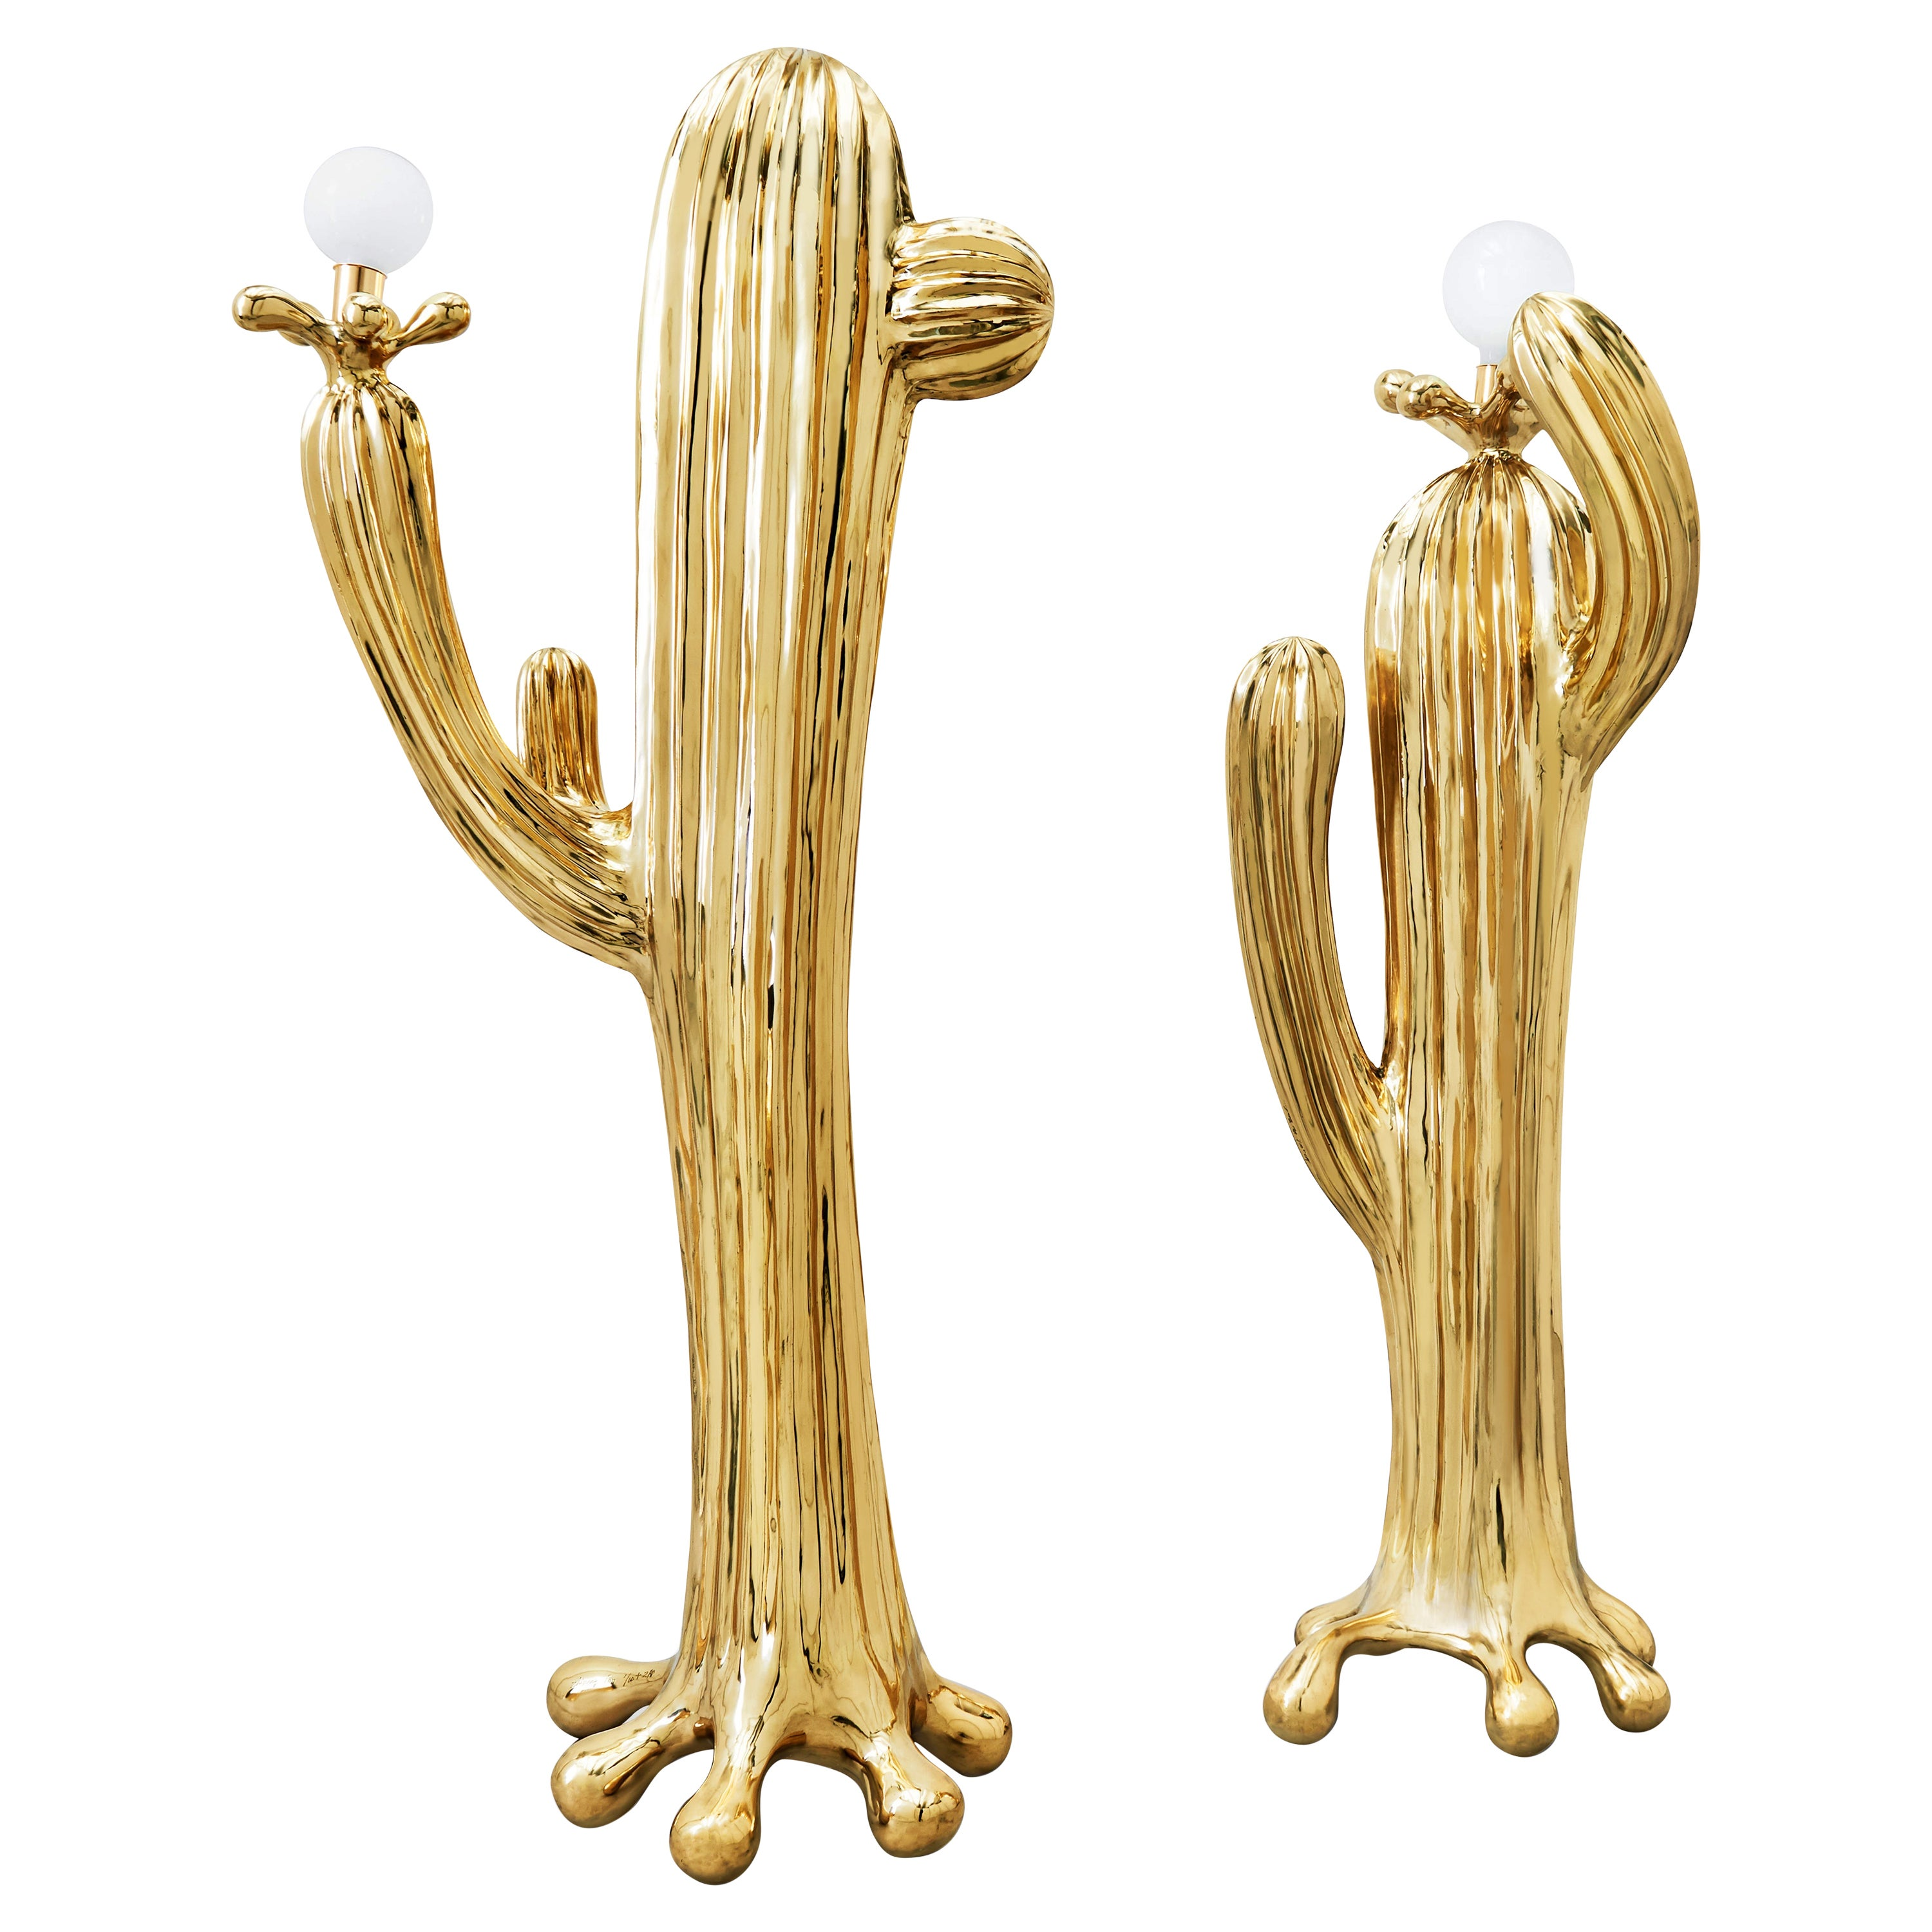 Saguaro No.1 & No.2 Floor Lamp Polished Brass Gold by Zhipeng Tan